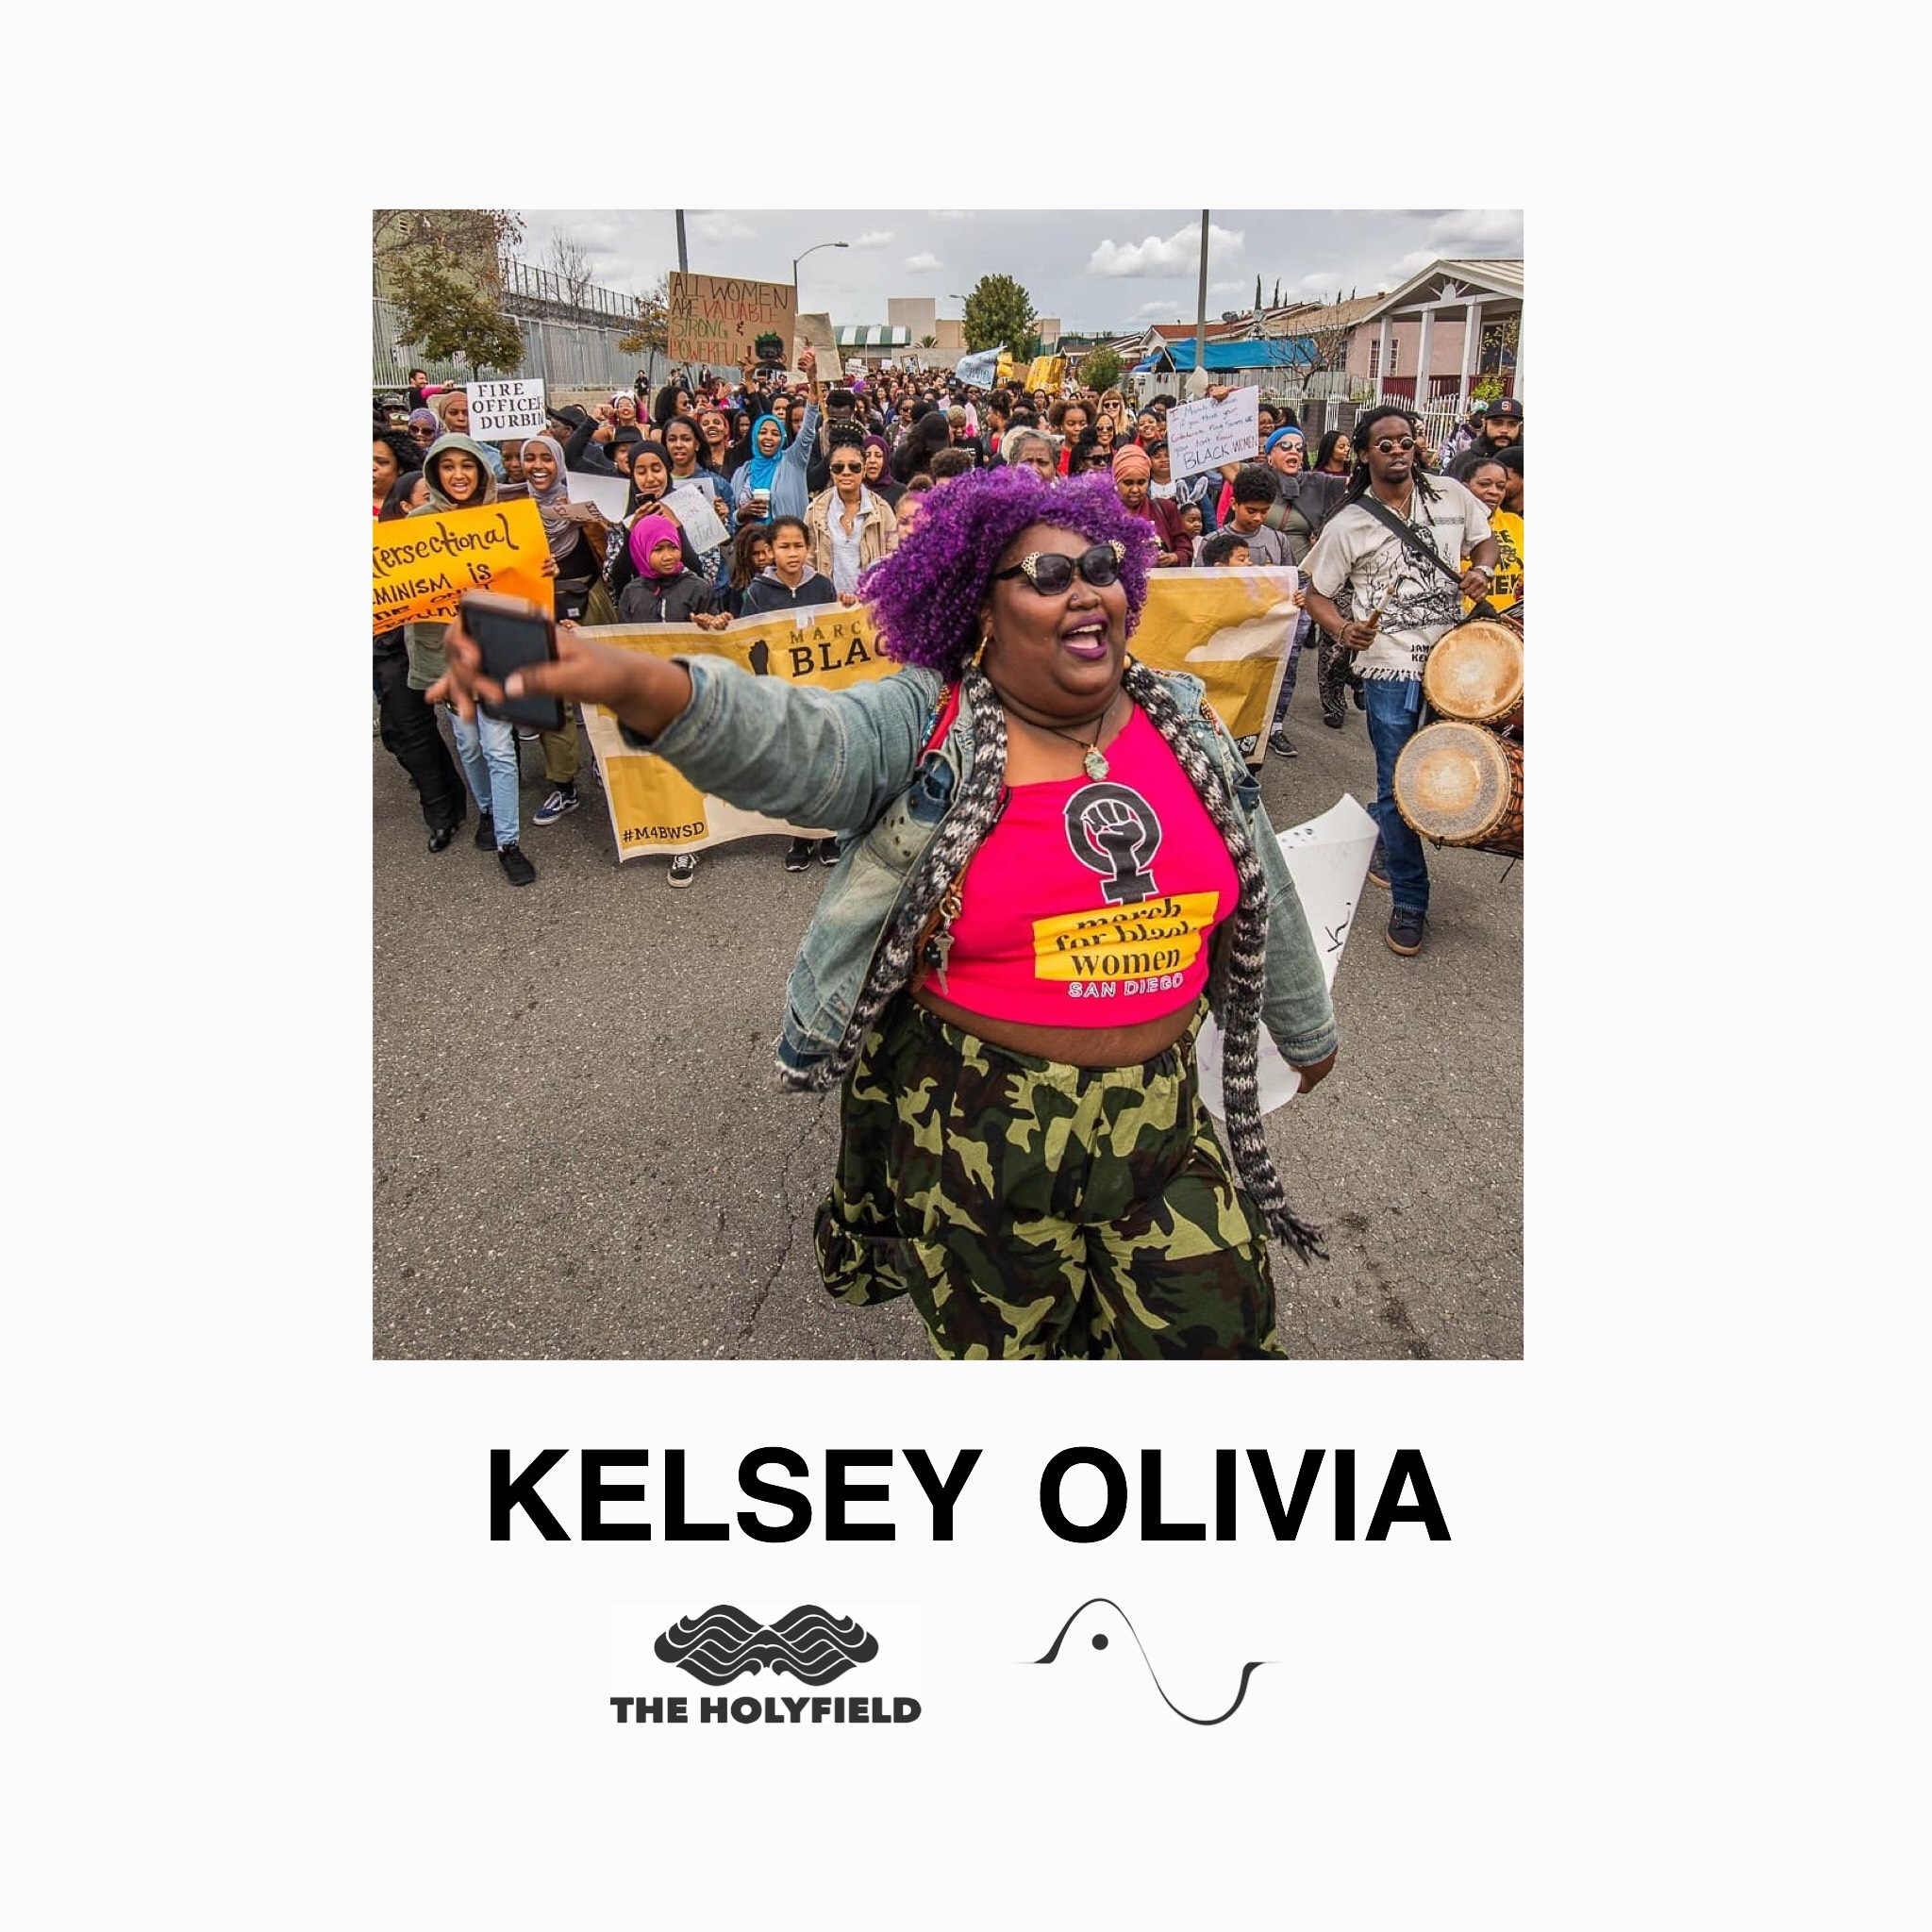 Kelsey Olivia is a well known poet and activist. She put together the March for Black Women San Diego and will be talking about how poetry helped her turn her Monsters into Masterpieces.